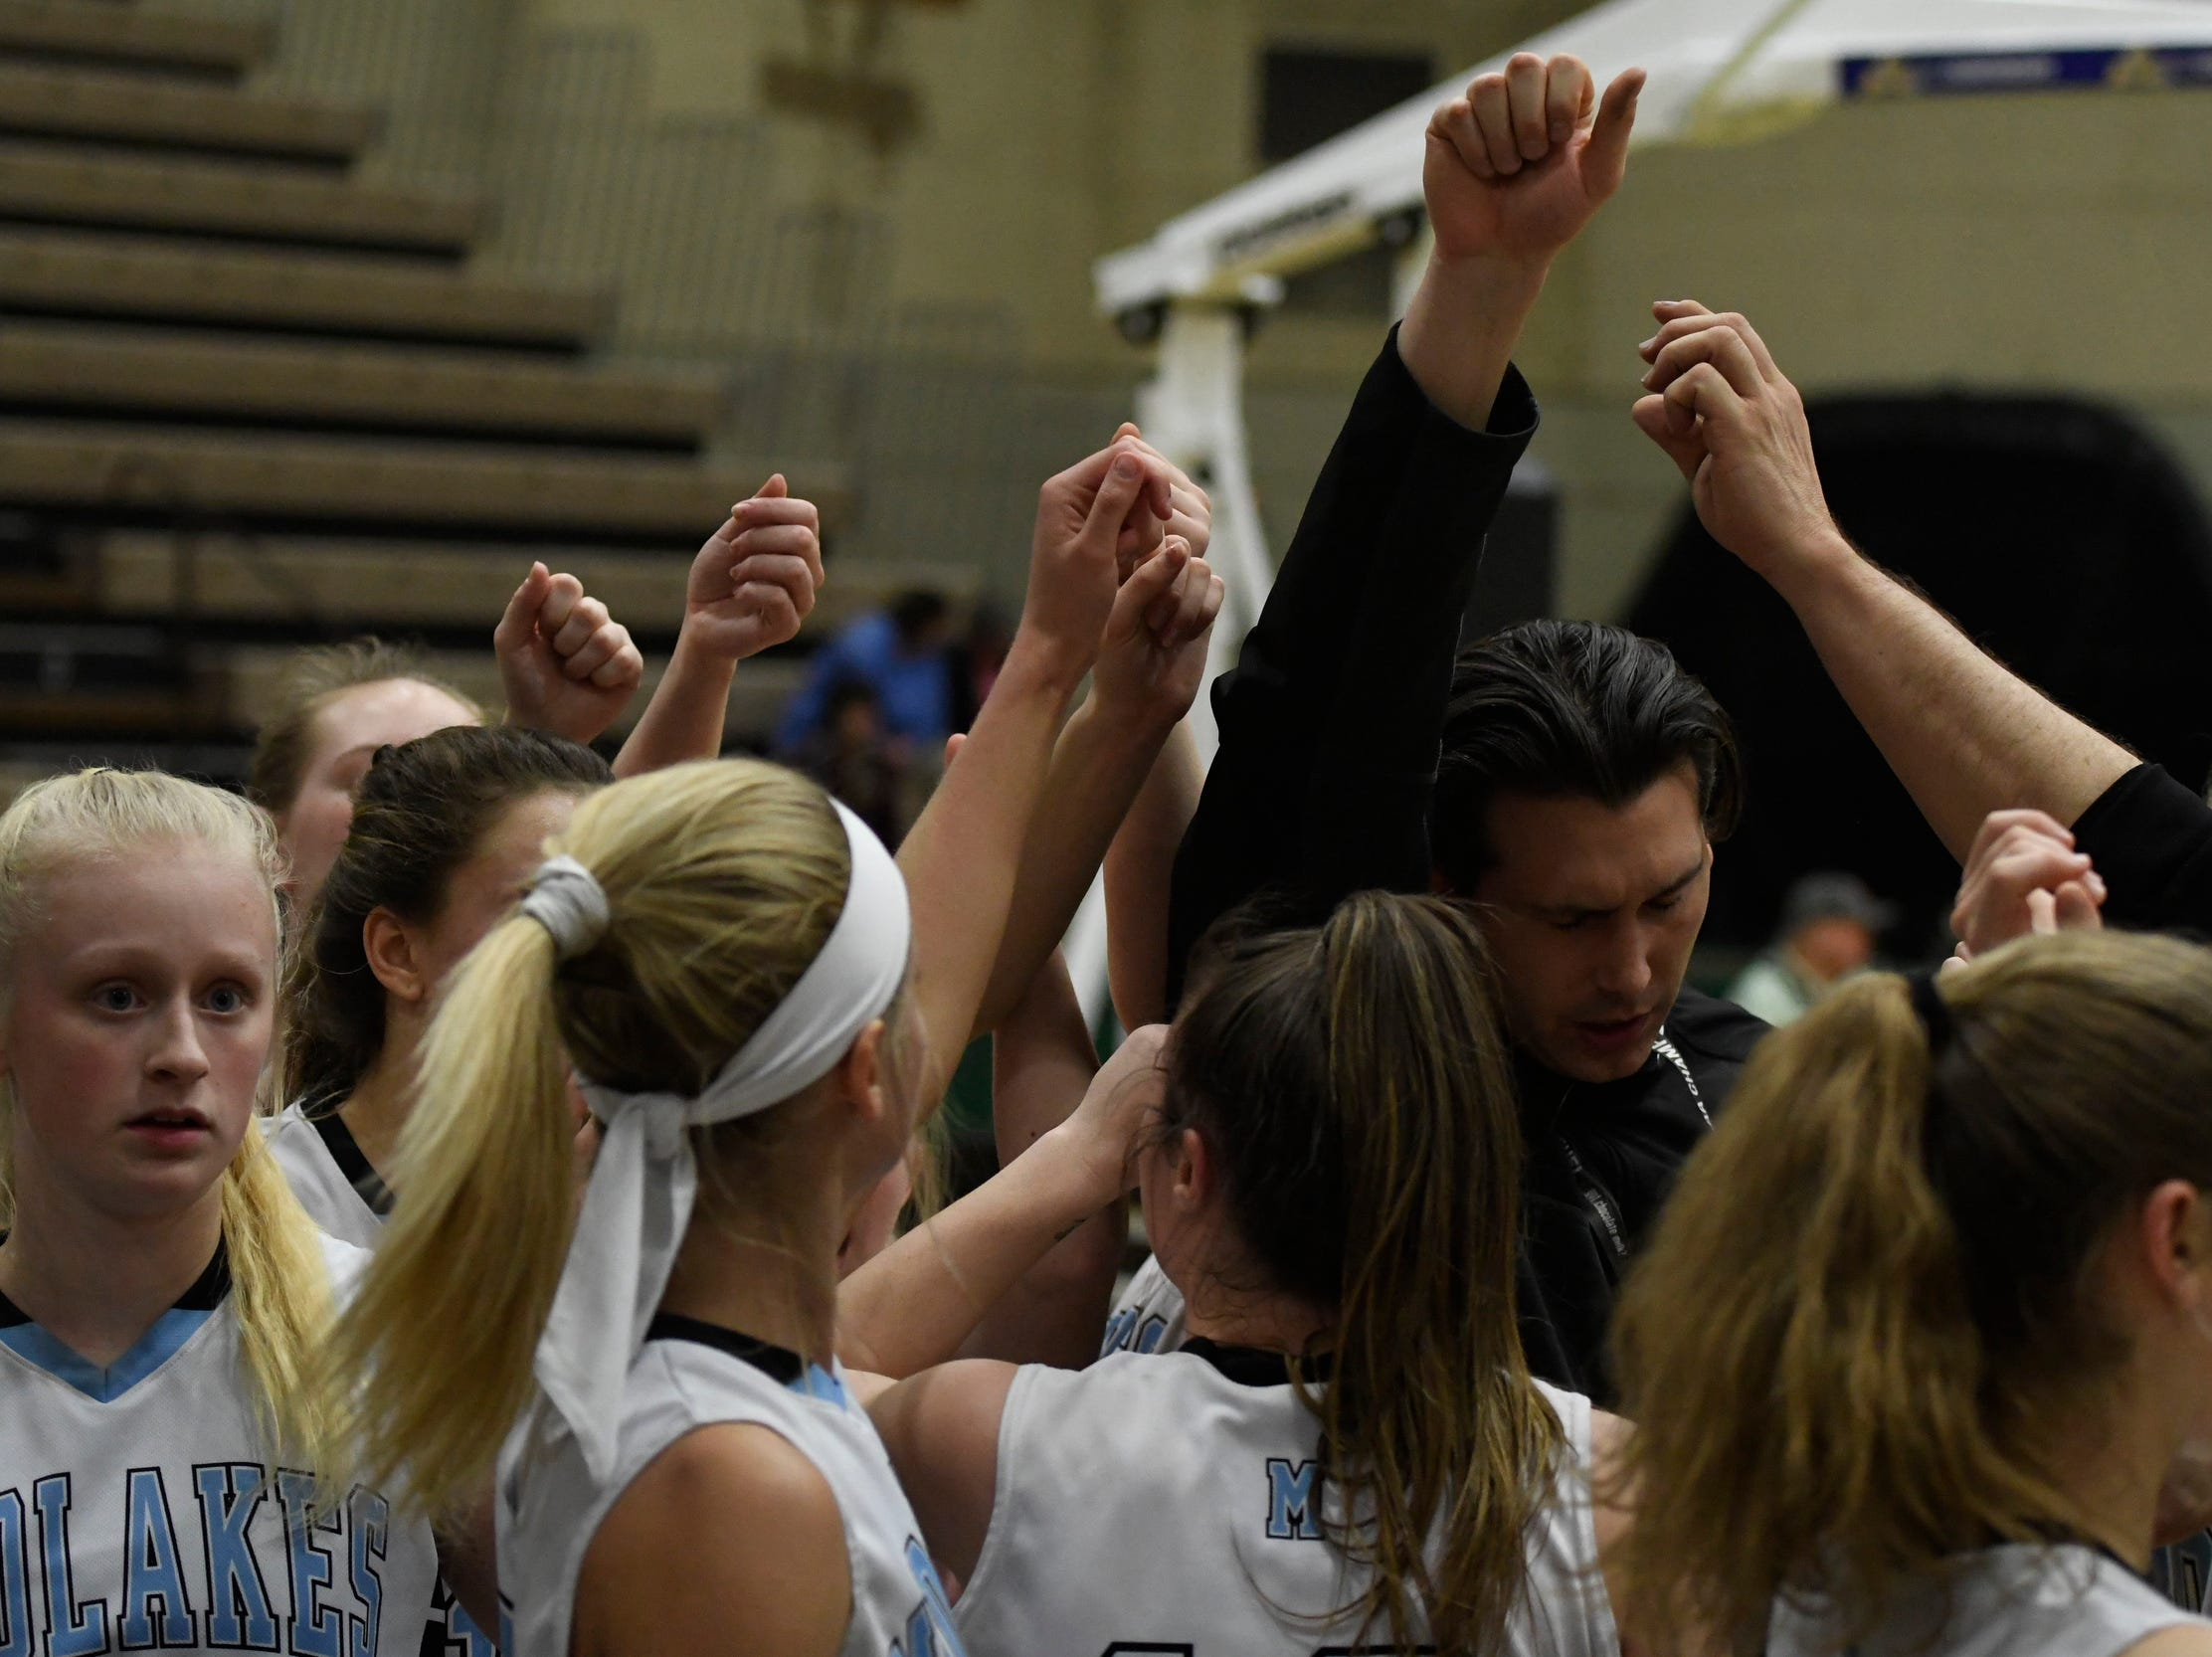 Midlakes girls basketball head coach Nate Rich, center, rallies his players between the third and fourth quarters of their Class B State Semifinal against Canton at Hudson Valley Community College in Troy, N.Y. on Friday, Mar. 15, 2019.